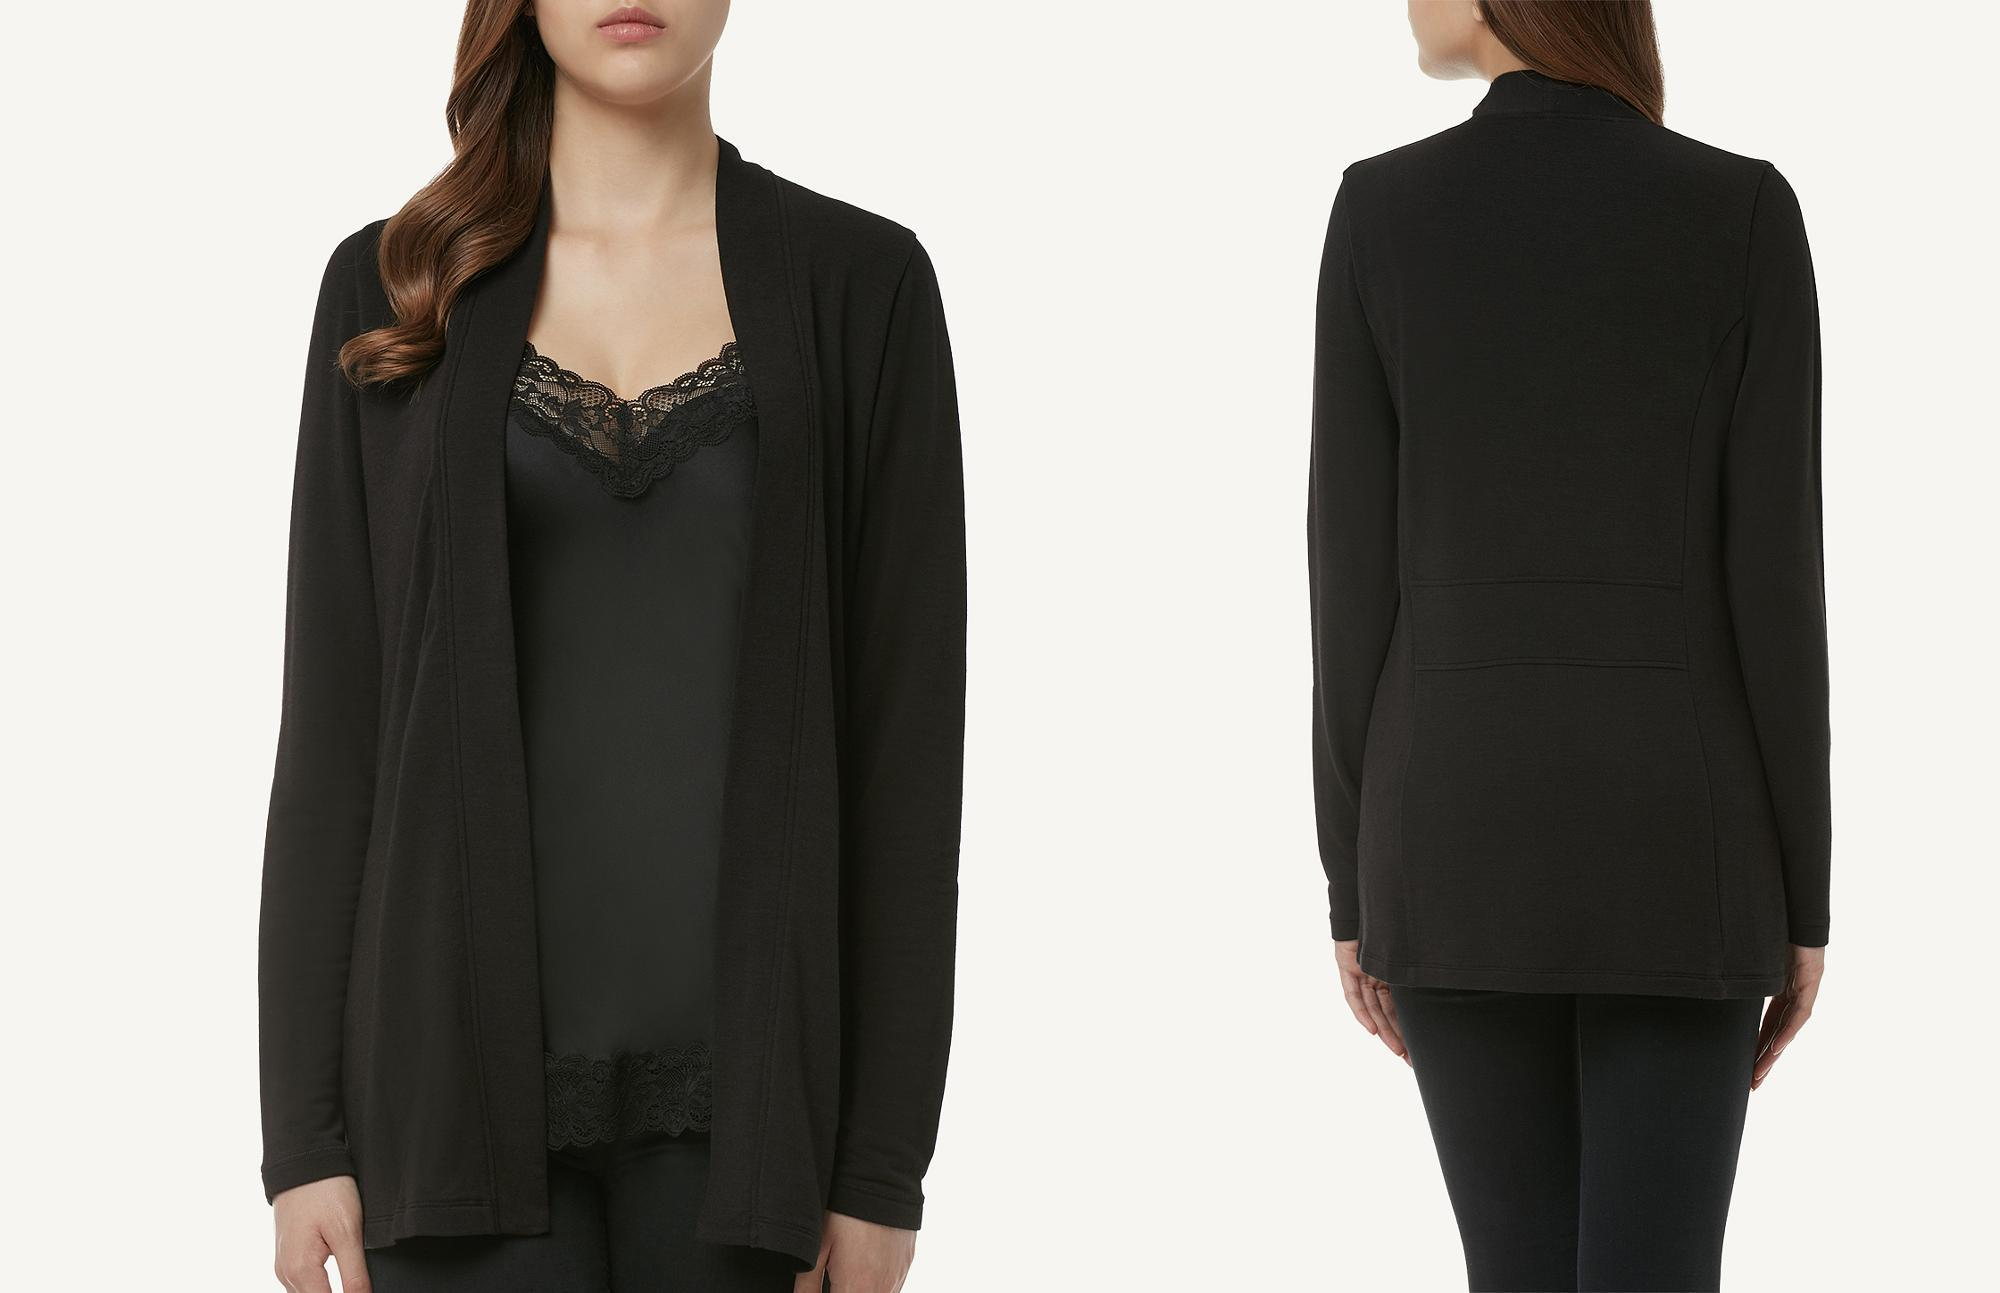 buy online b706f c1328 Intimissimi Long-sleeve Modal-cashmere Cardigan in Black - Lyst